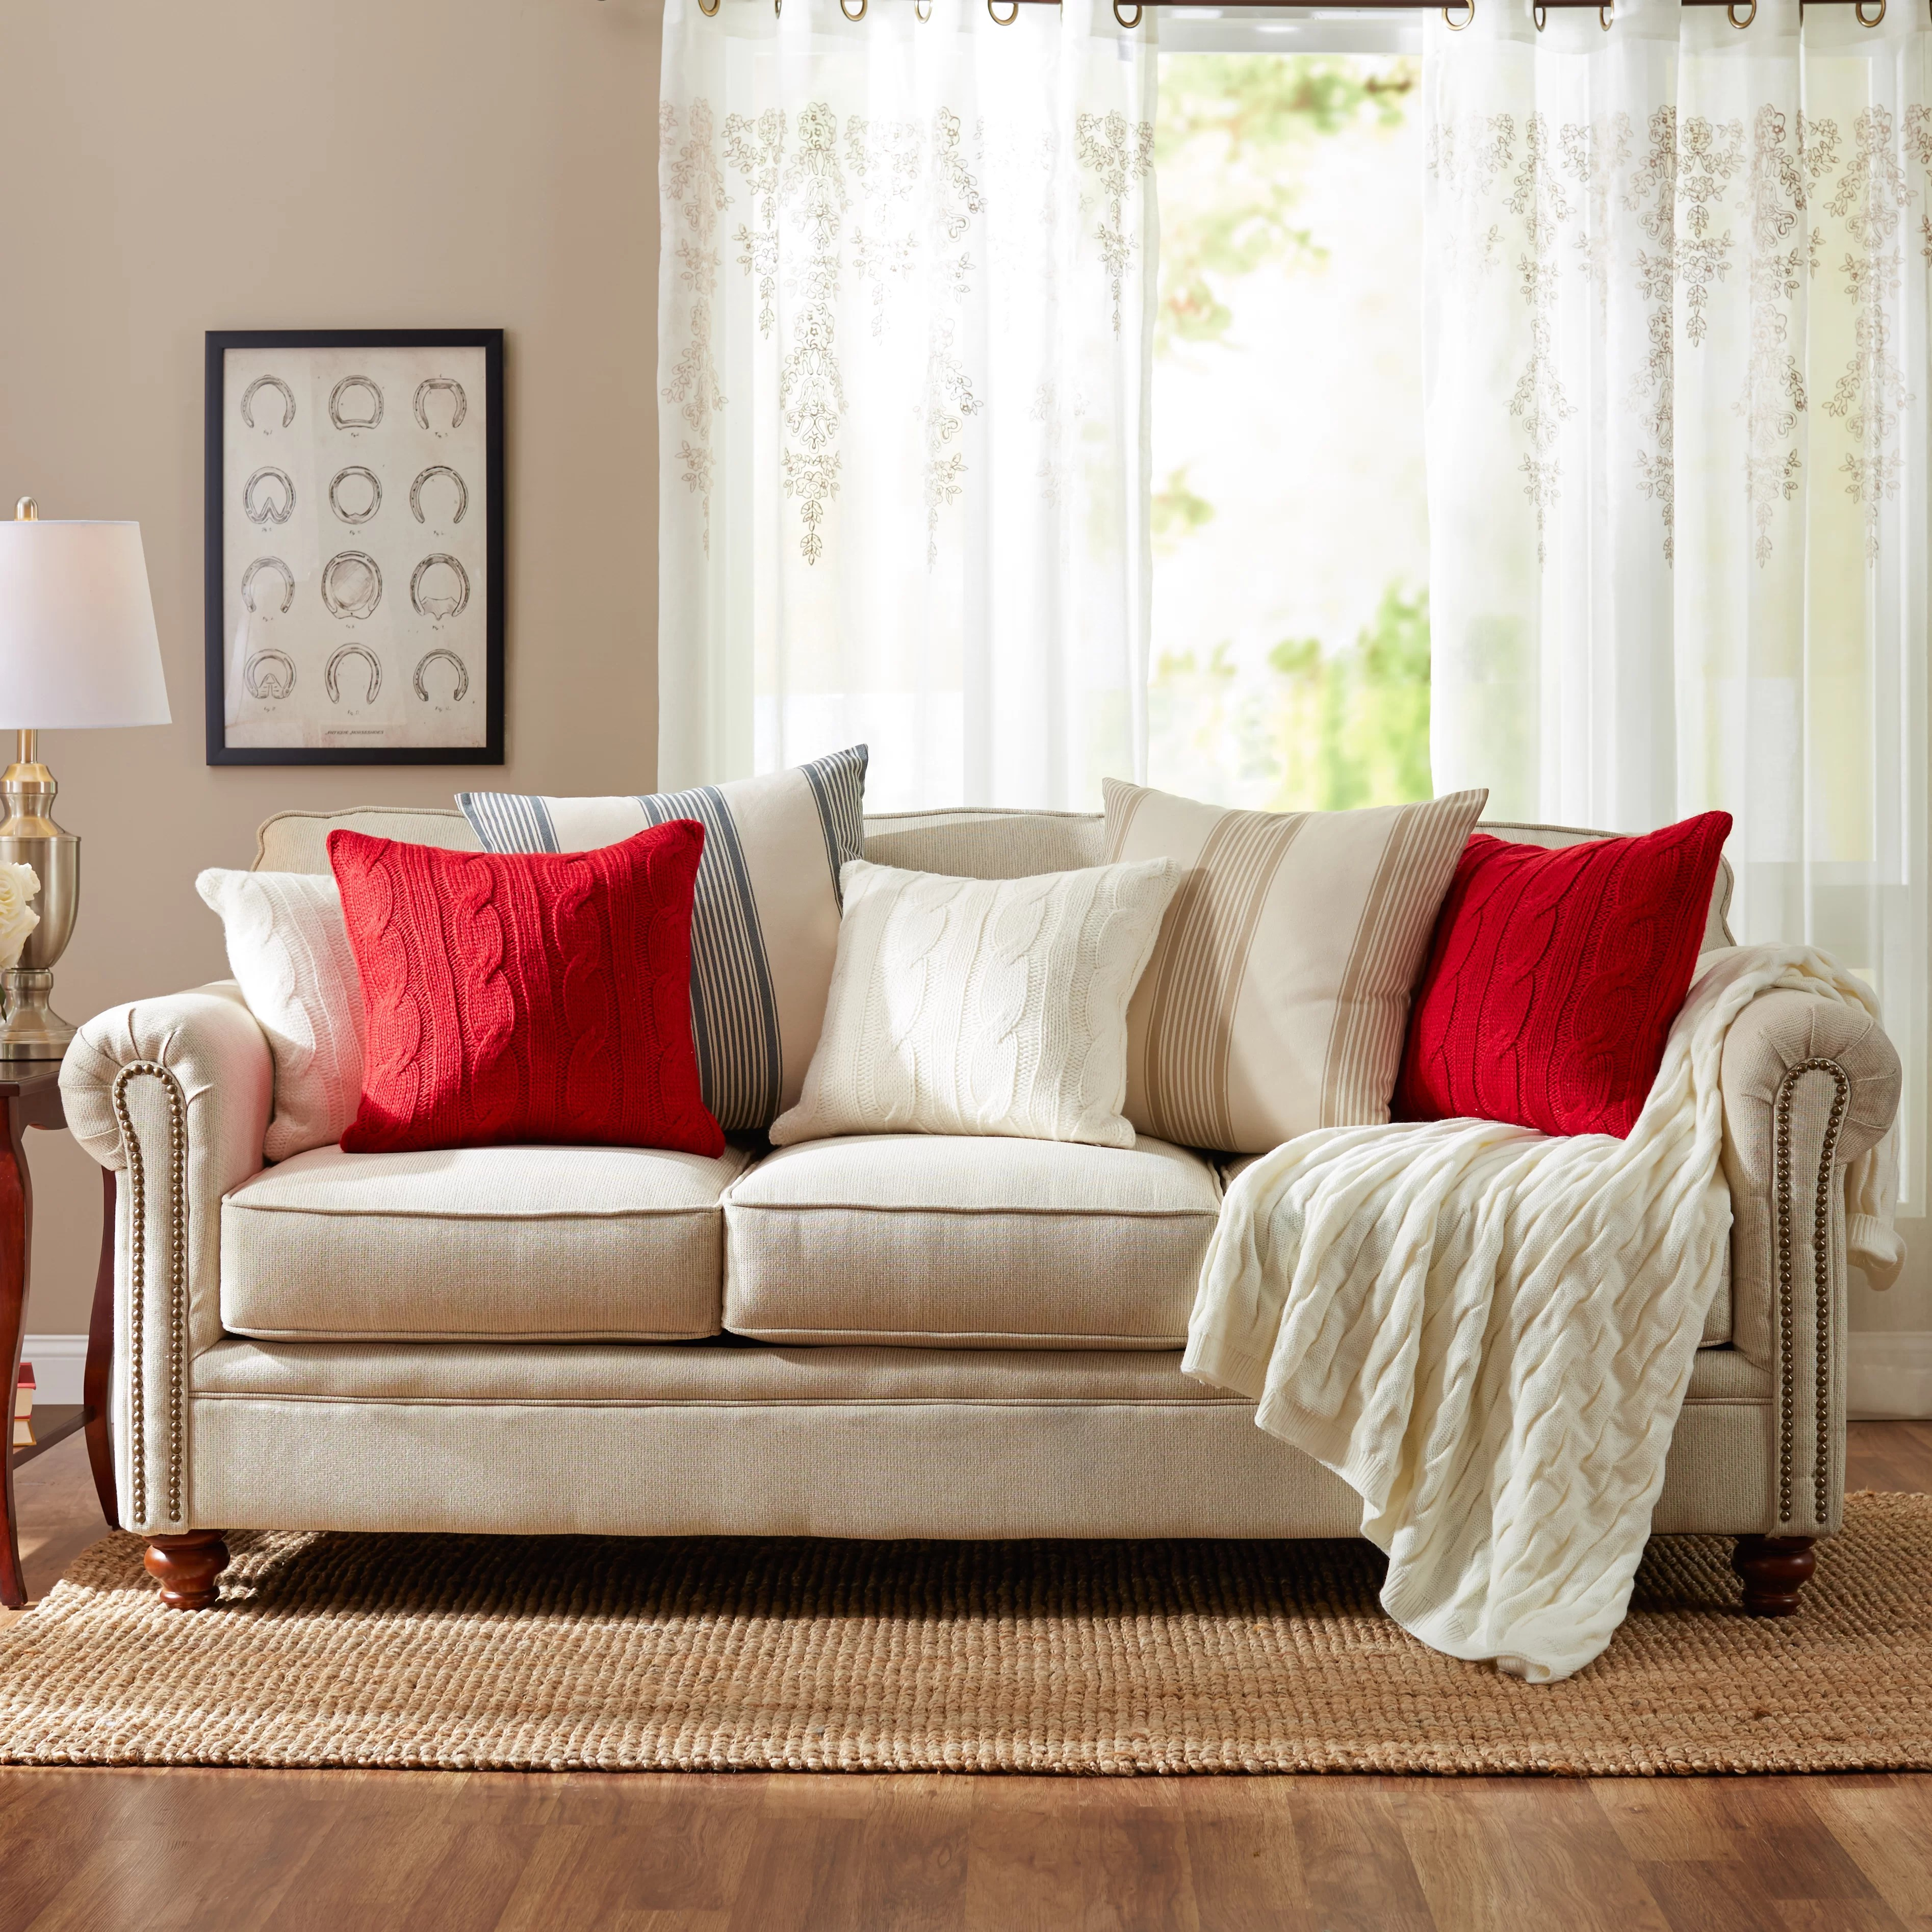 serta meredith convertible sofa reviews lazy boy sofas recliners caroll living room collection by upholstery wayfair